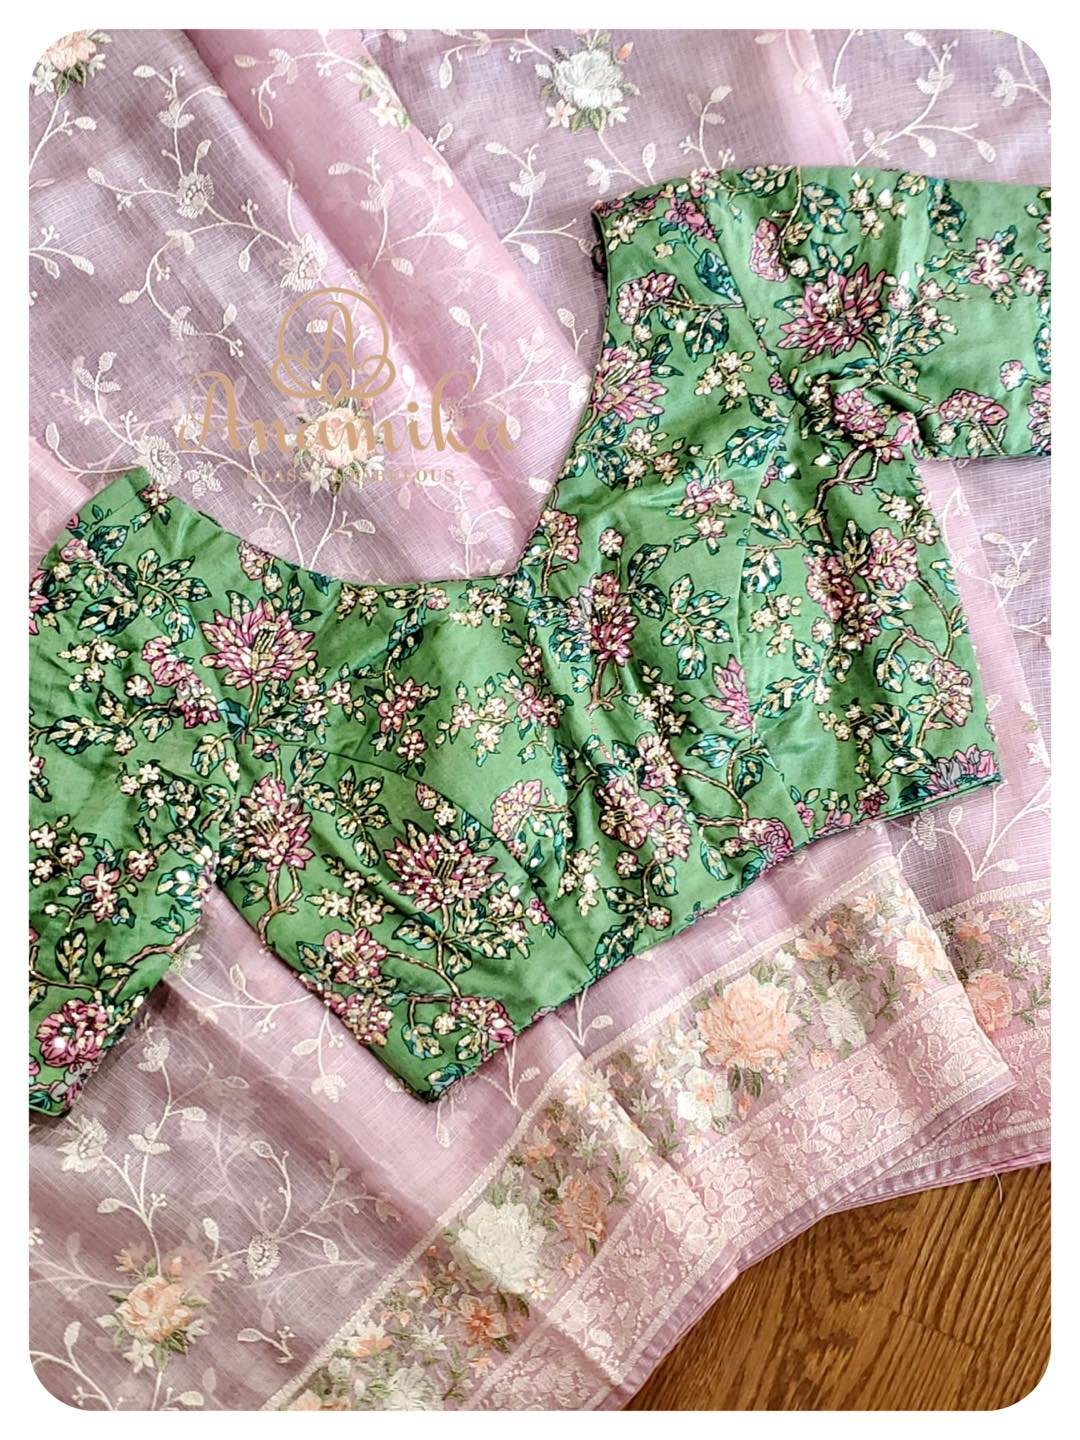 Kota chikankari in 2 lovely pastel shades - paired with even more beautiful floral work blouses.  Wow